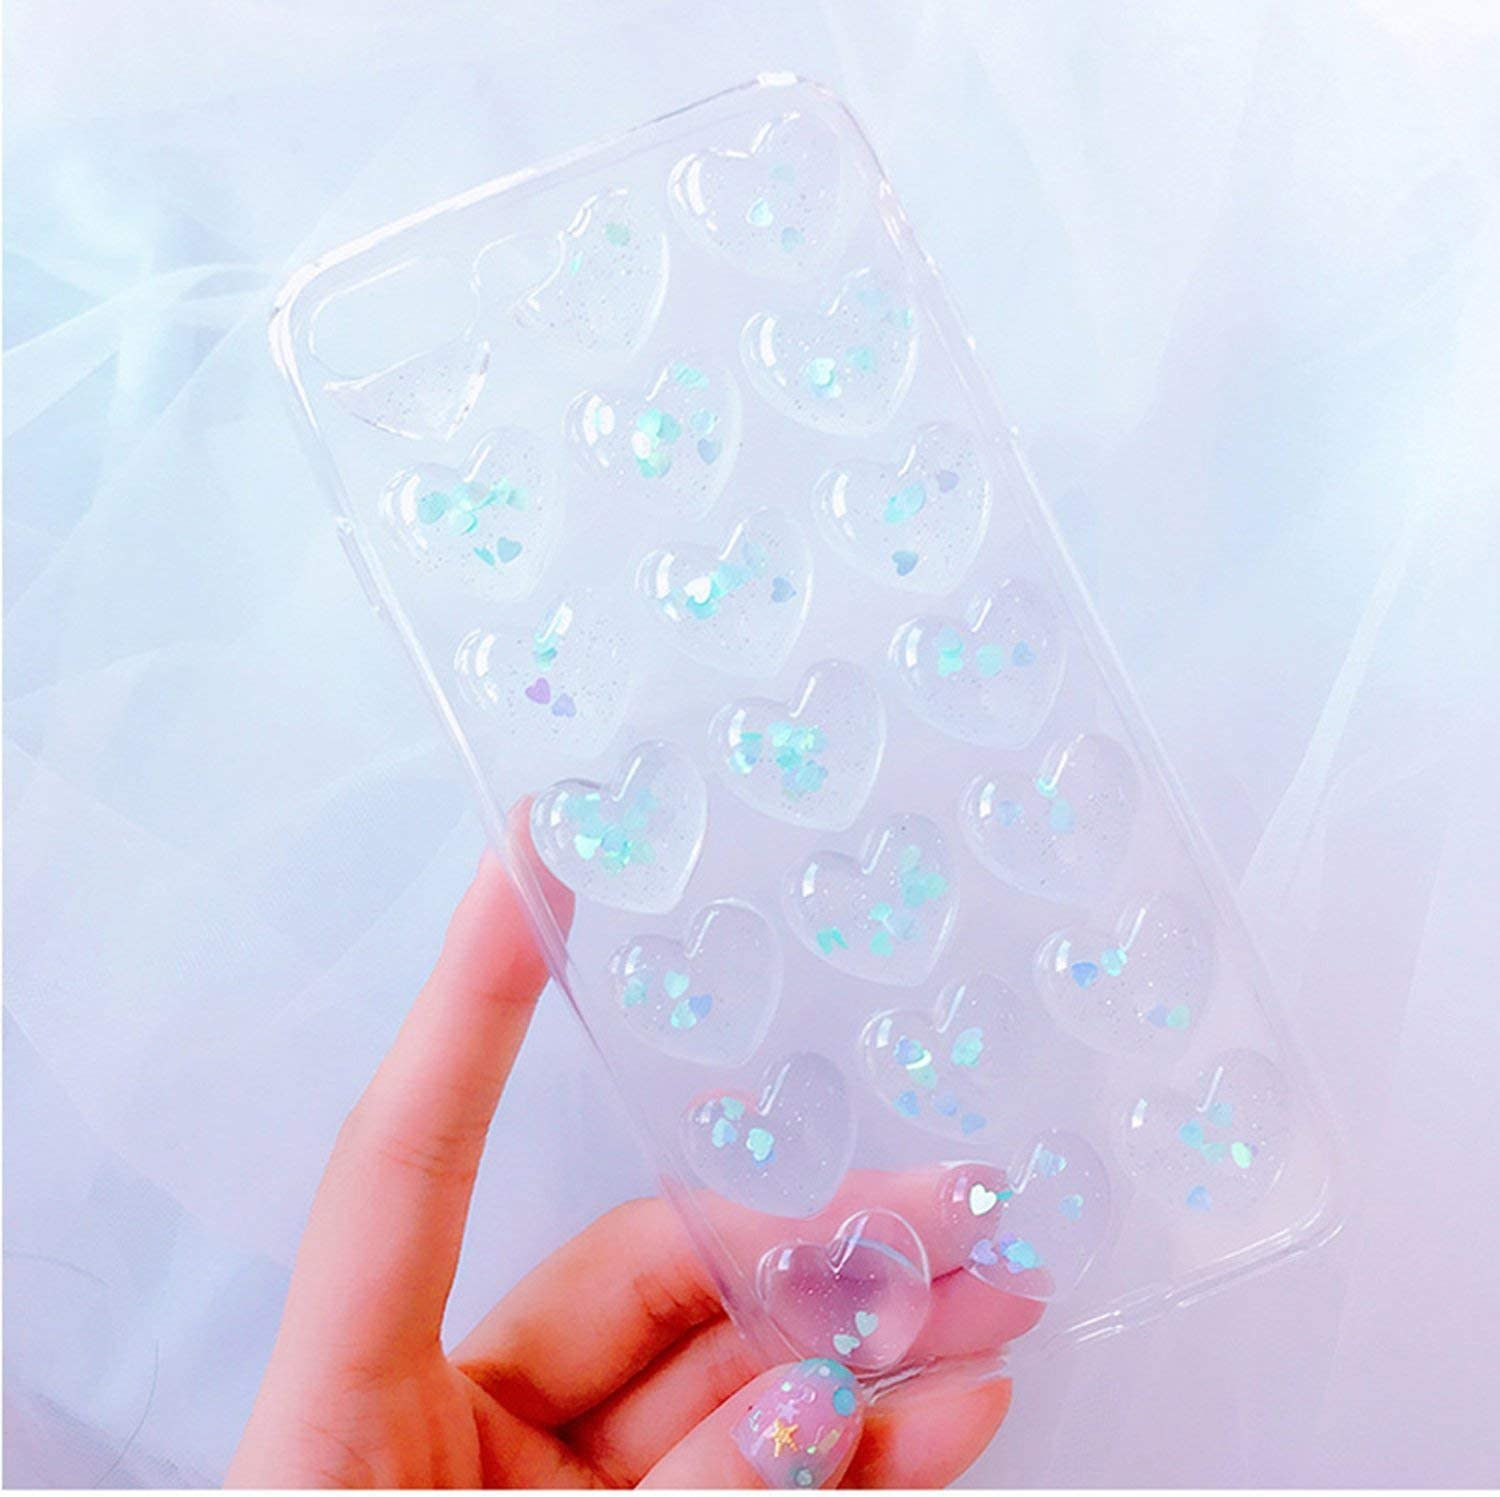 for Samsung Note 9 S9 Plus S8 Plus Cases 3D Glitter Love Heart Korean Clear Case for iPhone X Xr Xs Max 7 8 6S Plus Girly Cover,Pink,for Samsung S8